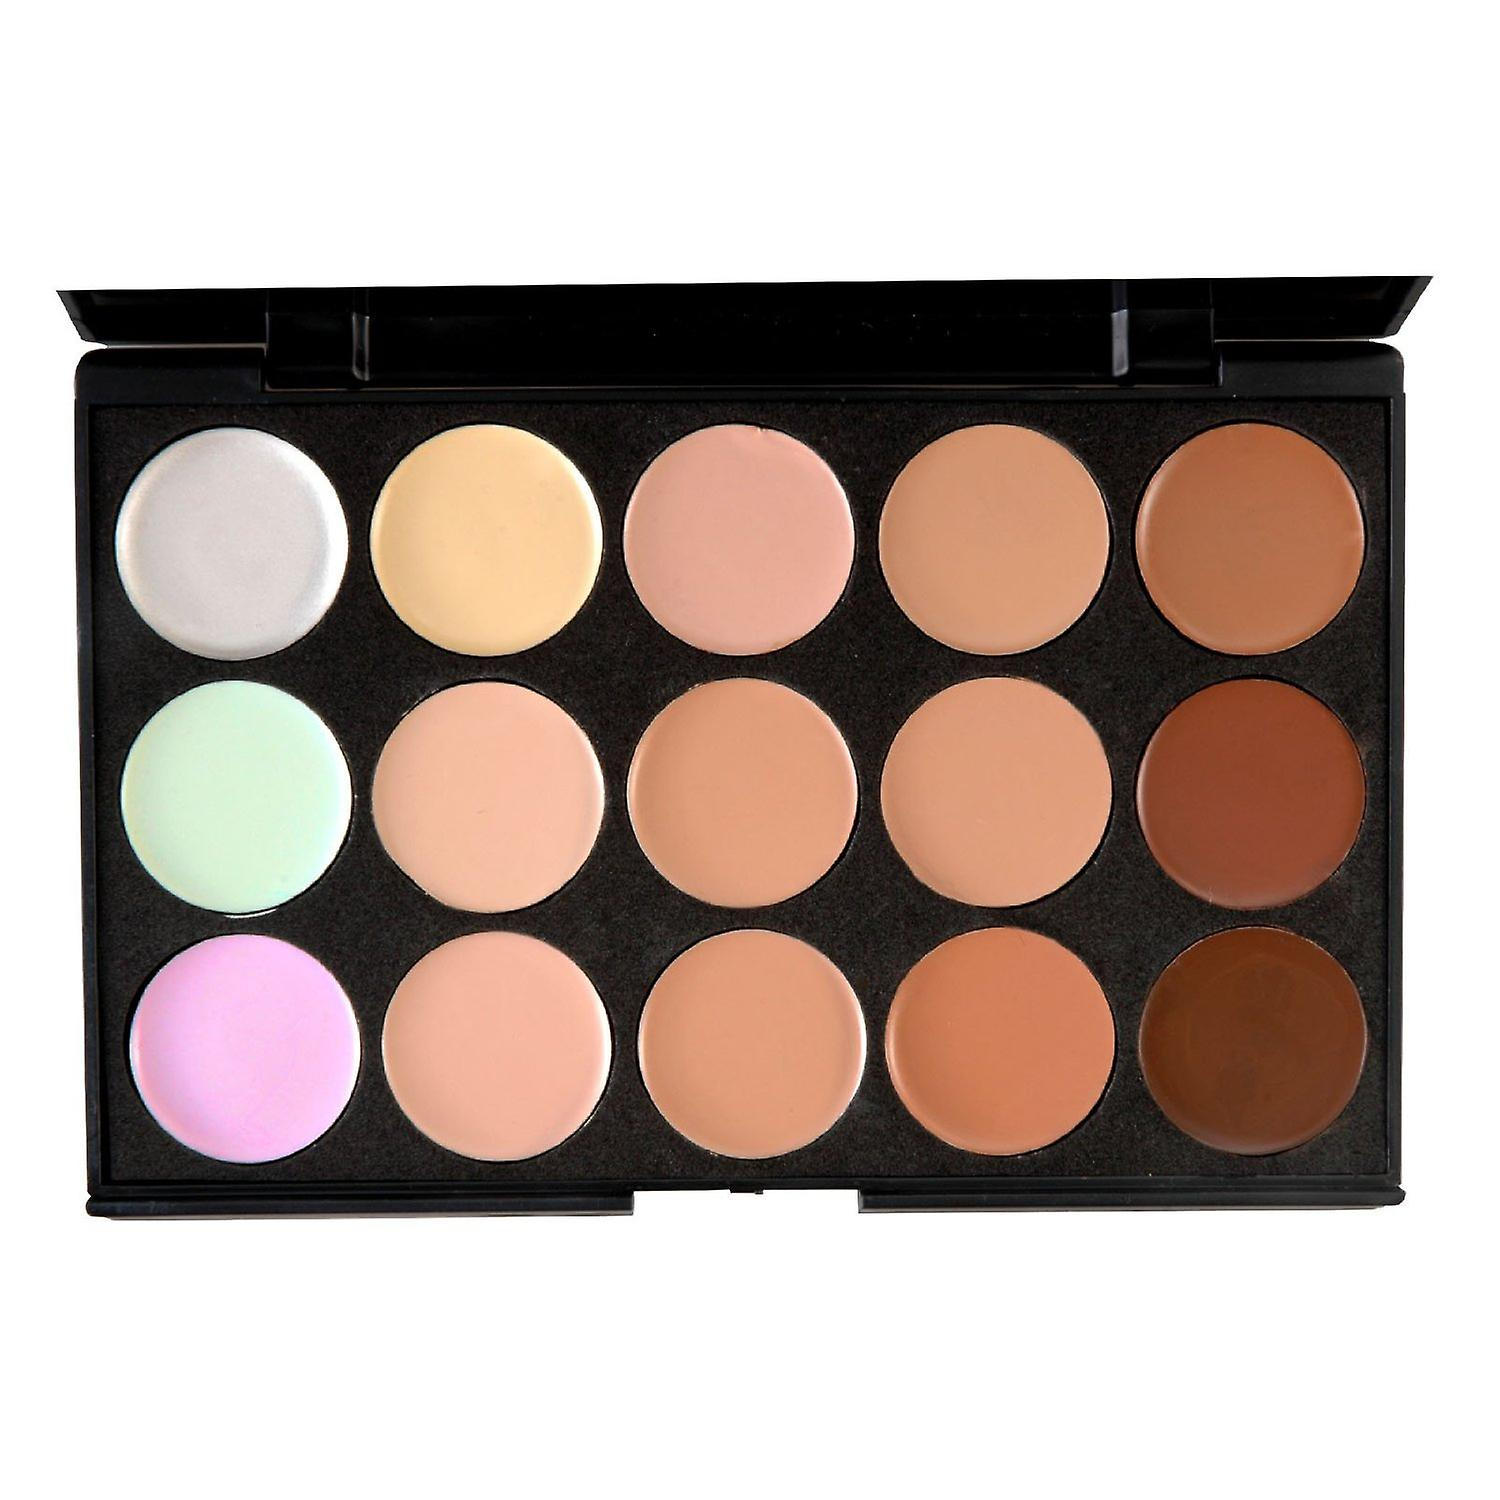 15 Colours 3D Radiance Concealer Palette Set